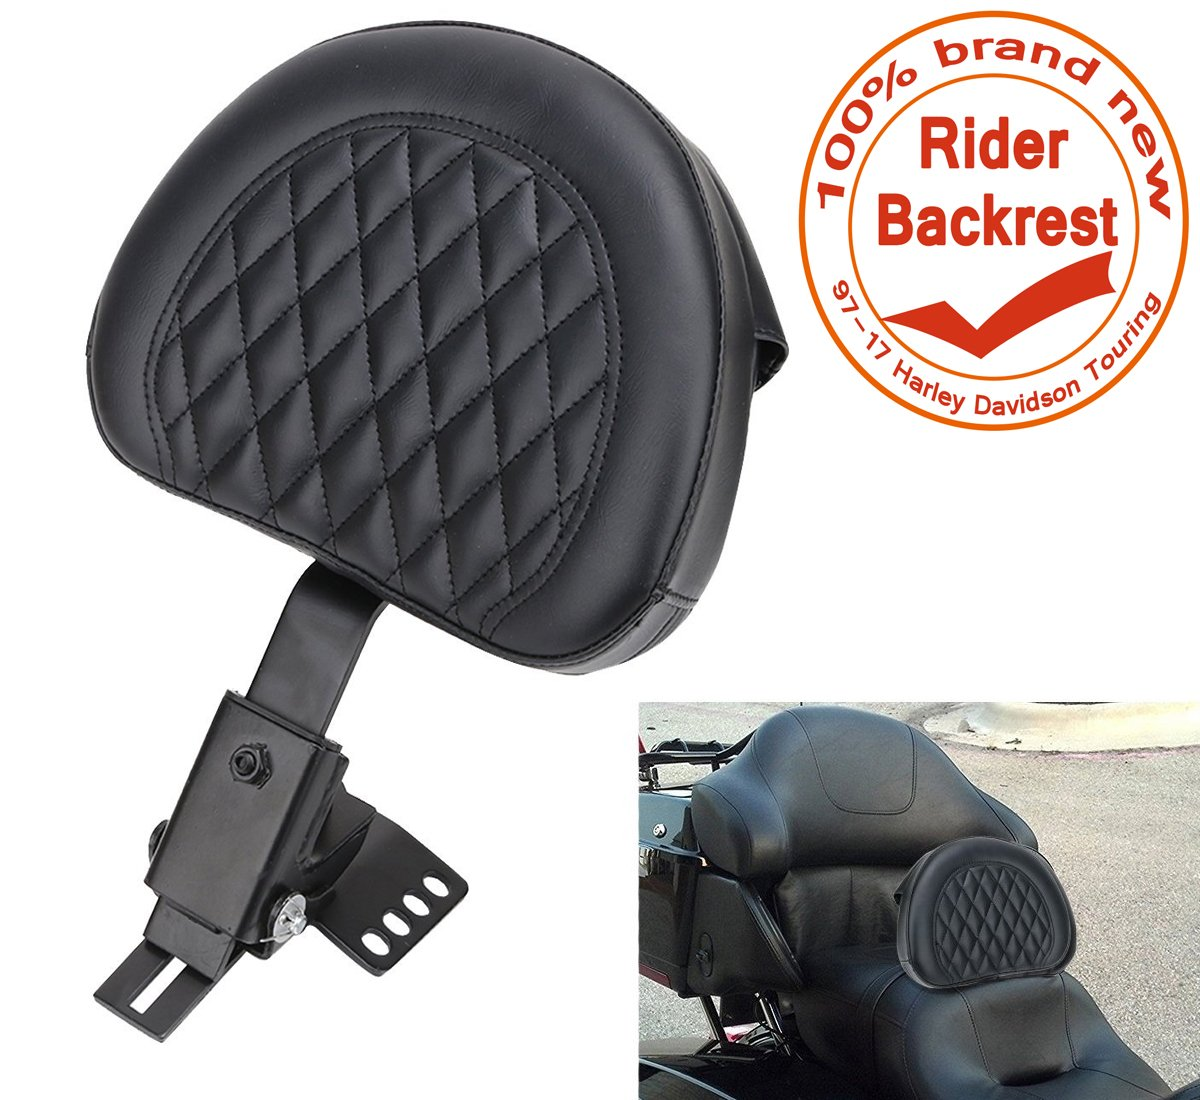 E-Most New Plug-In Diamond Stitching Driver Rider Backrest Black Detachable Adjustable (Bracket&Leather Pad) for 1997-2017 Harley Davidson Touring models